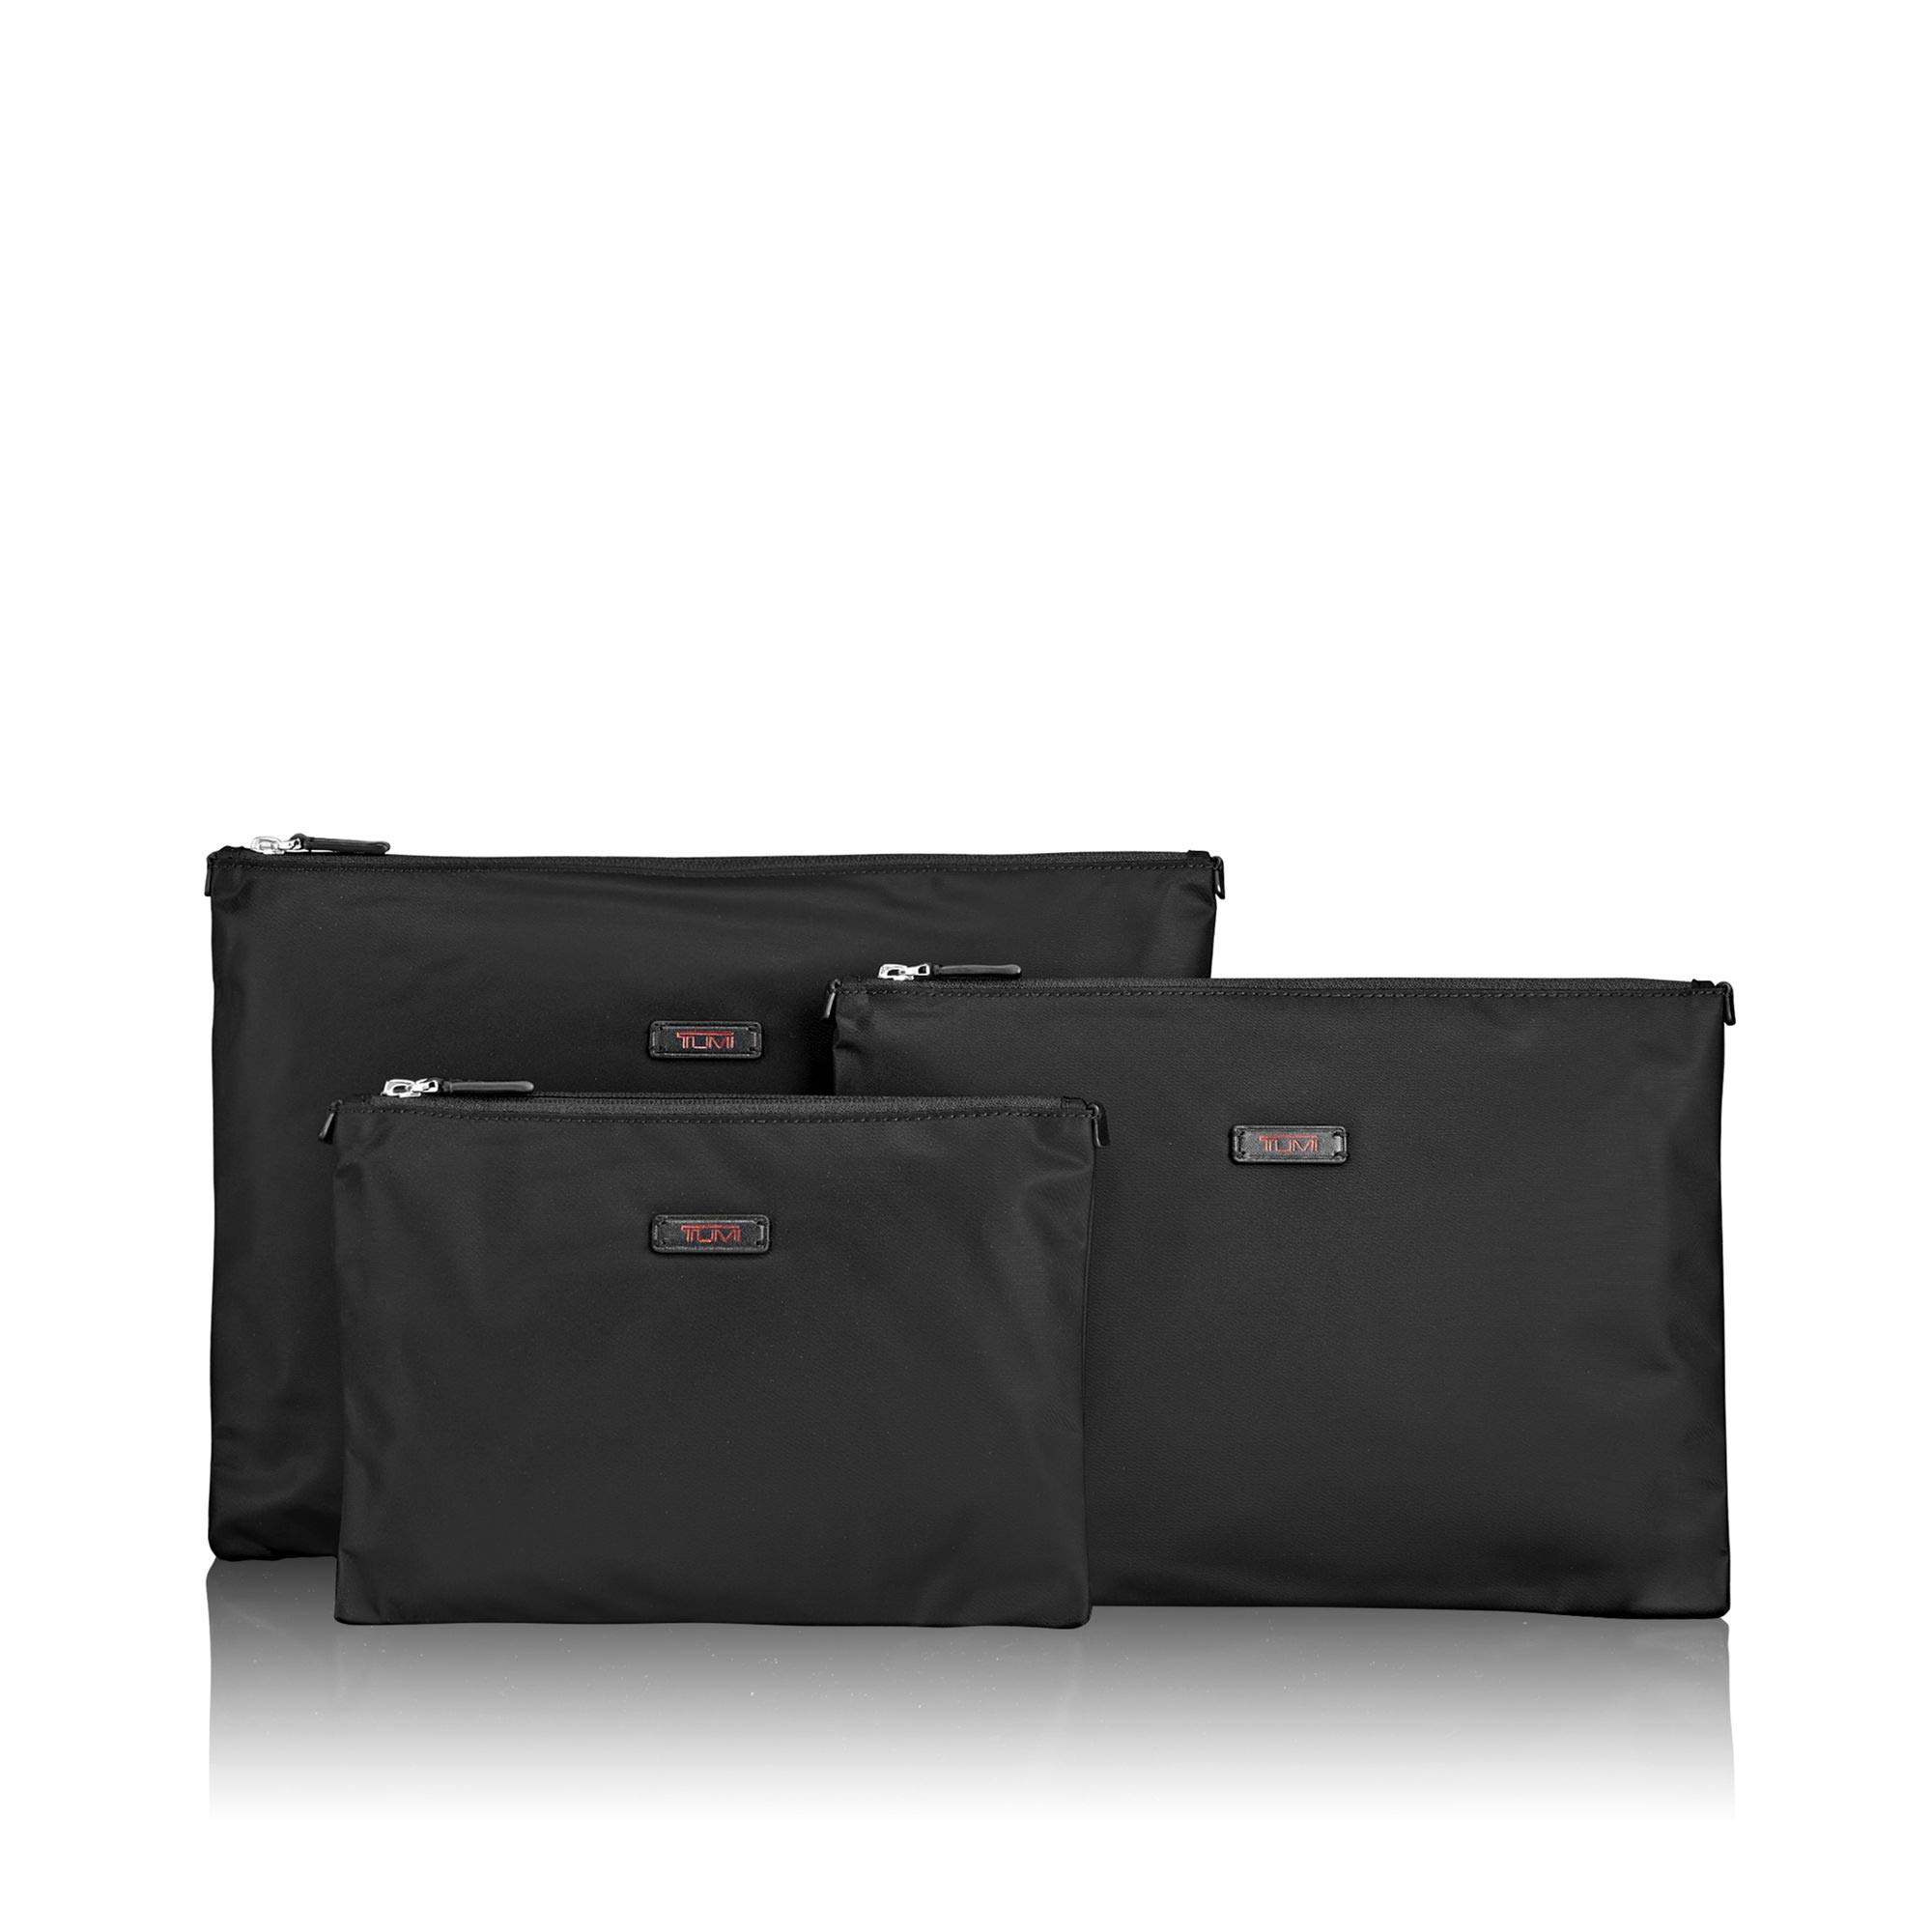 TUMI - Travel Accessories 3 Pouch Set Packing Cubes - Luggage Organizer Bag - Black